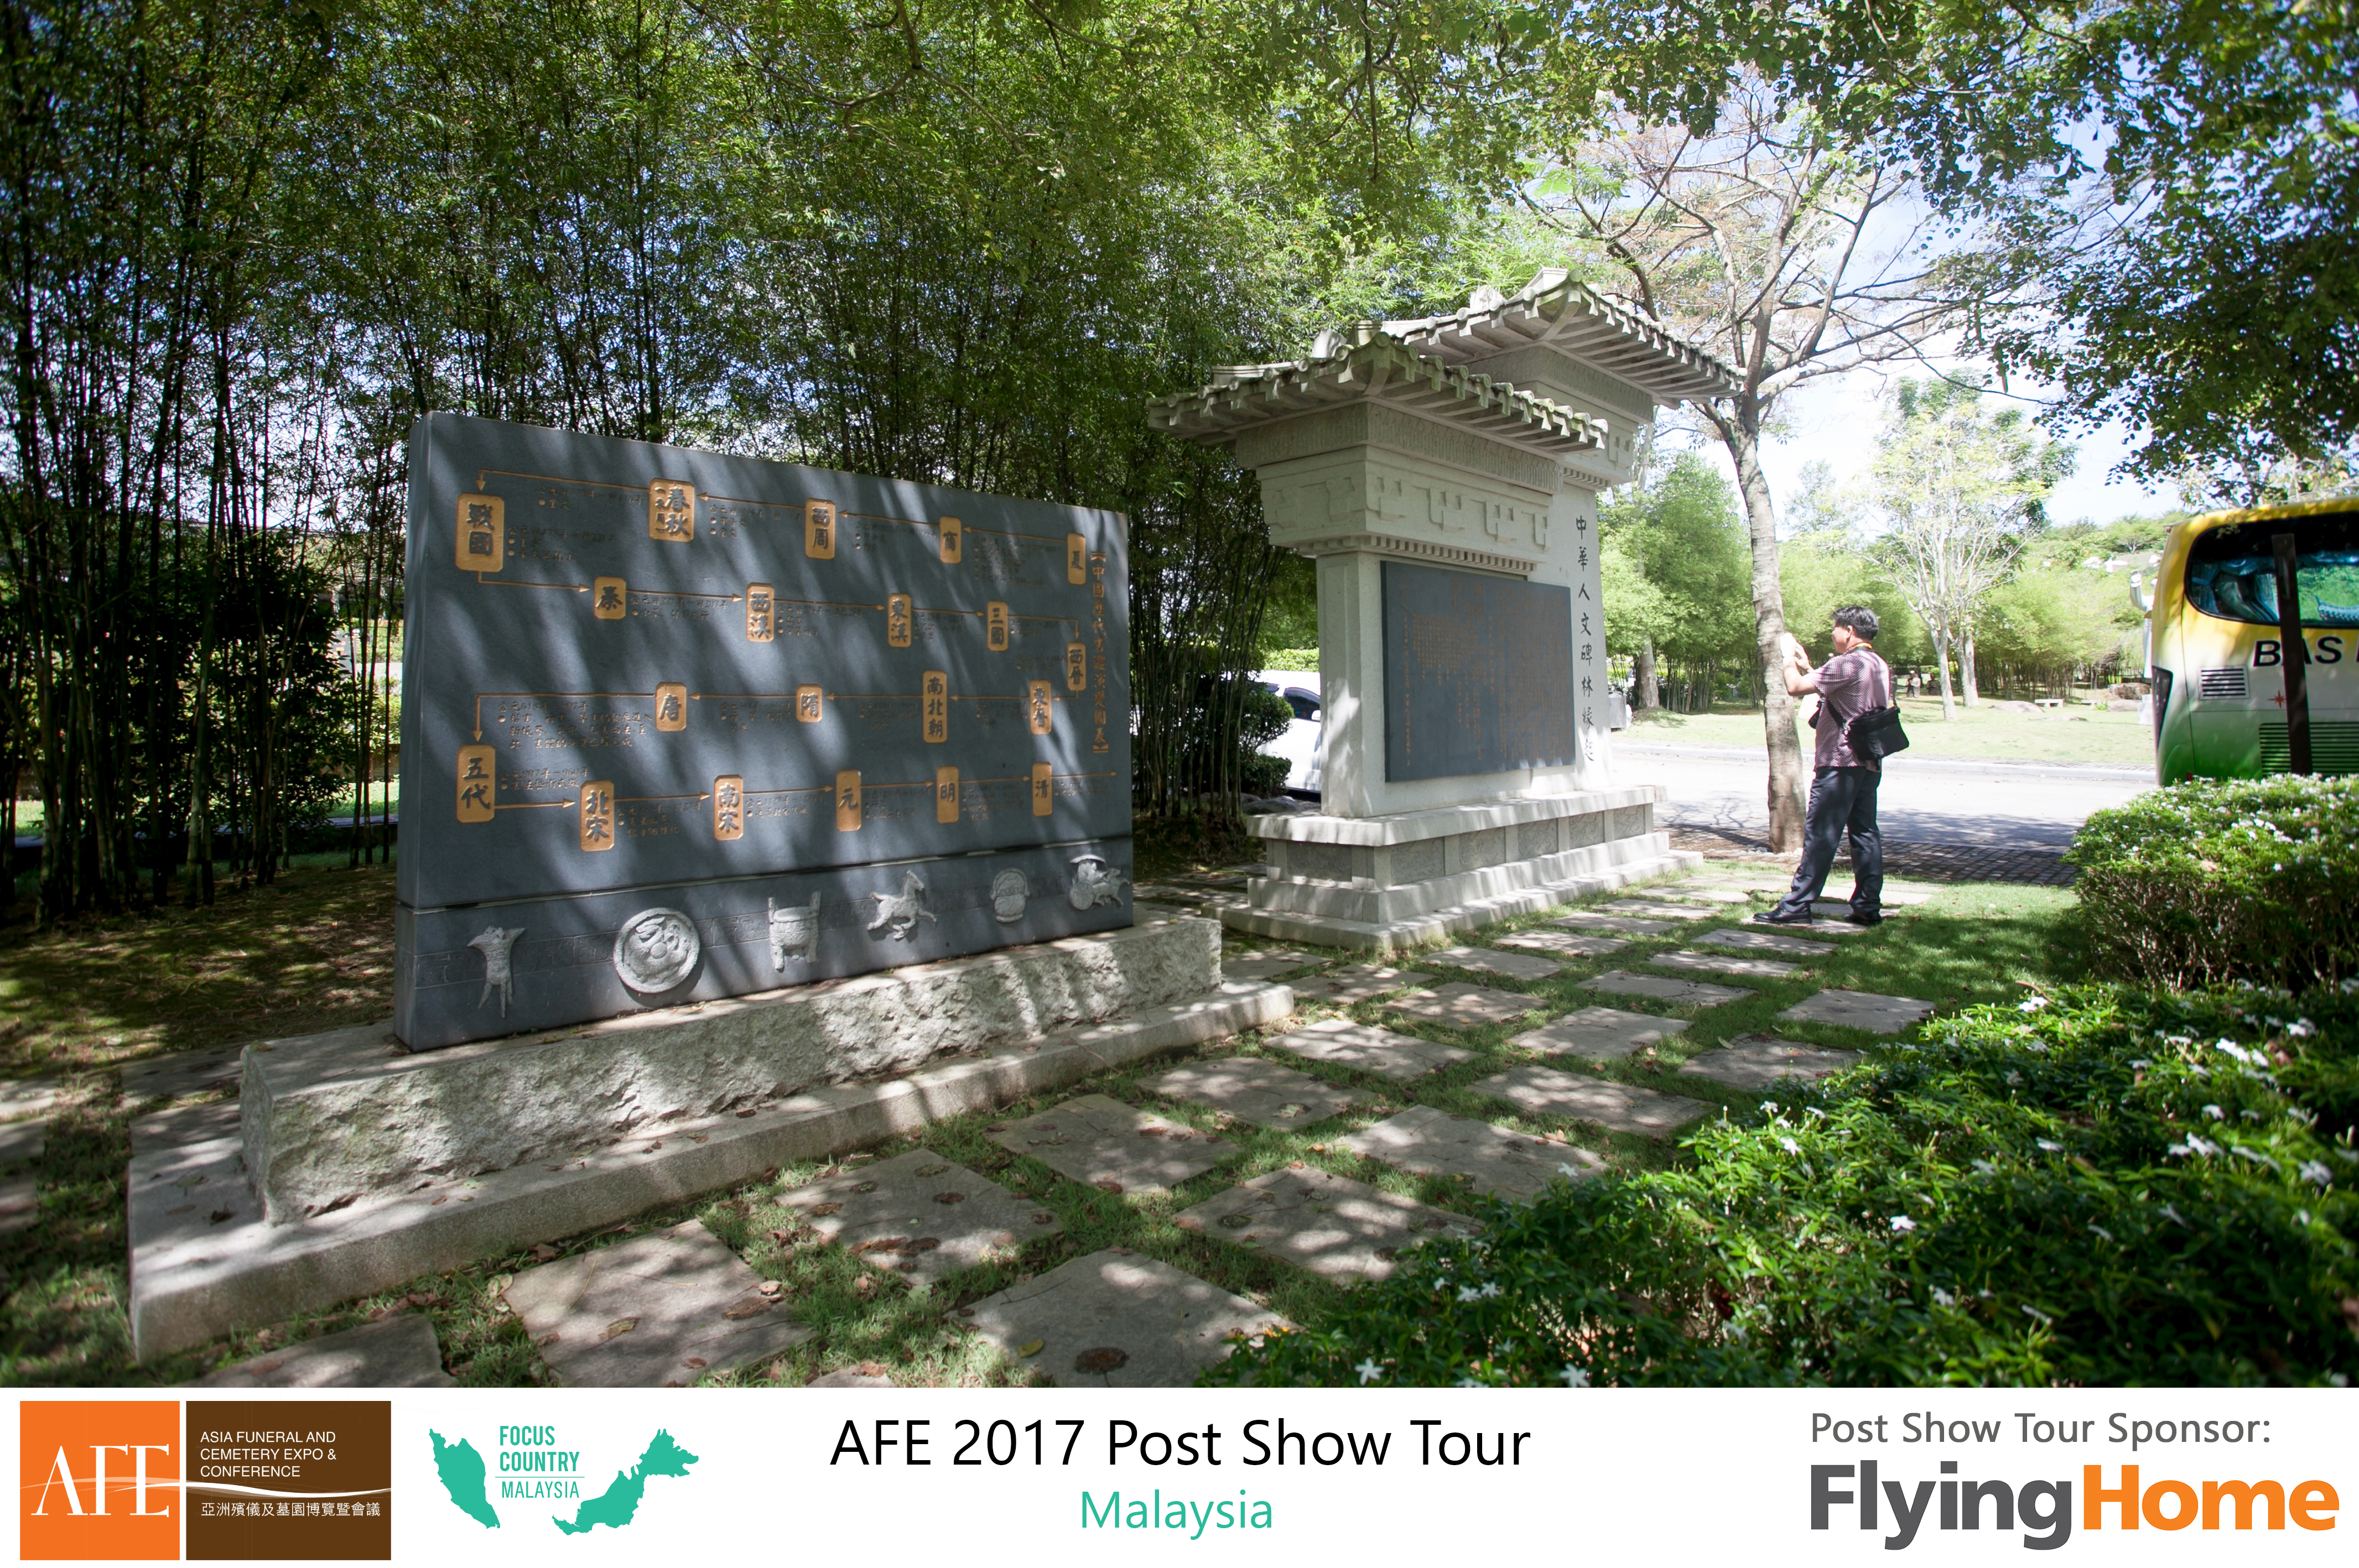 AFE Post Show Tour 2017 Day 2 - 51